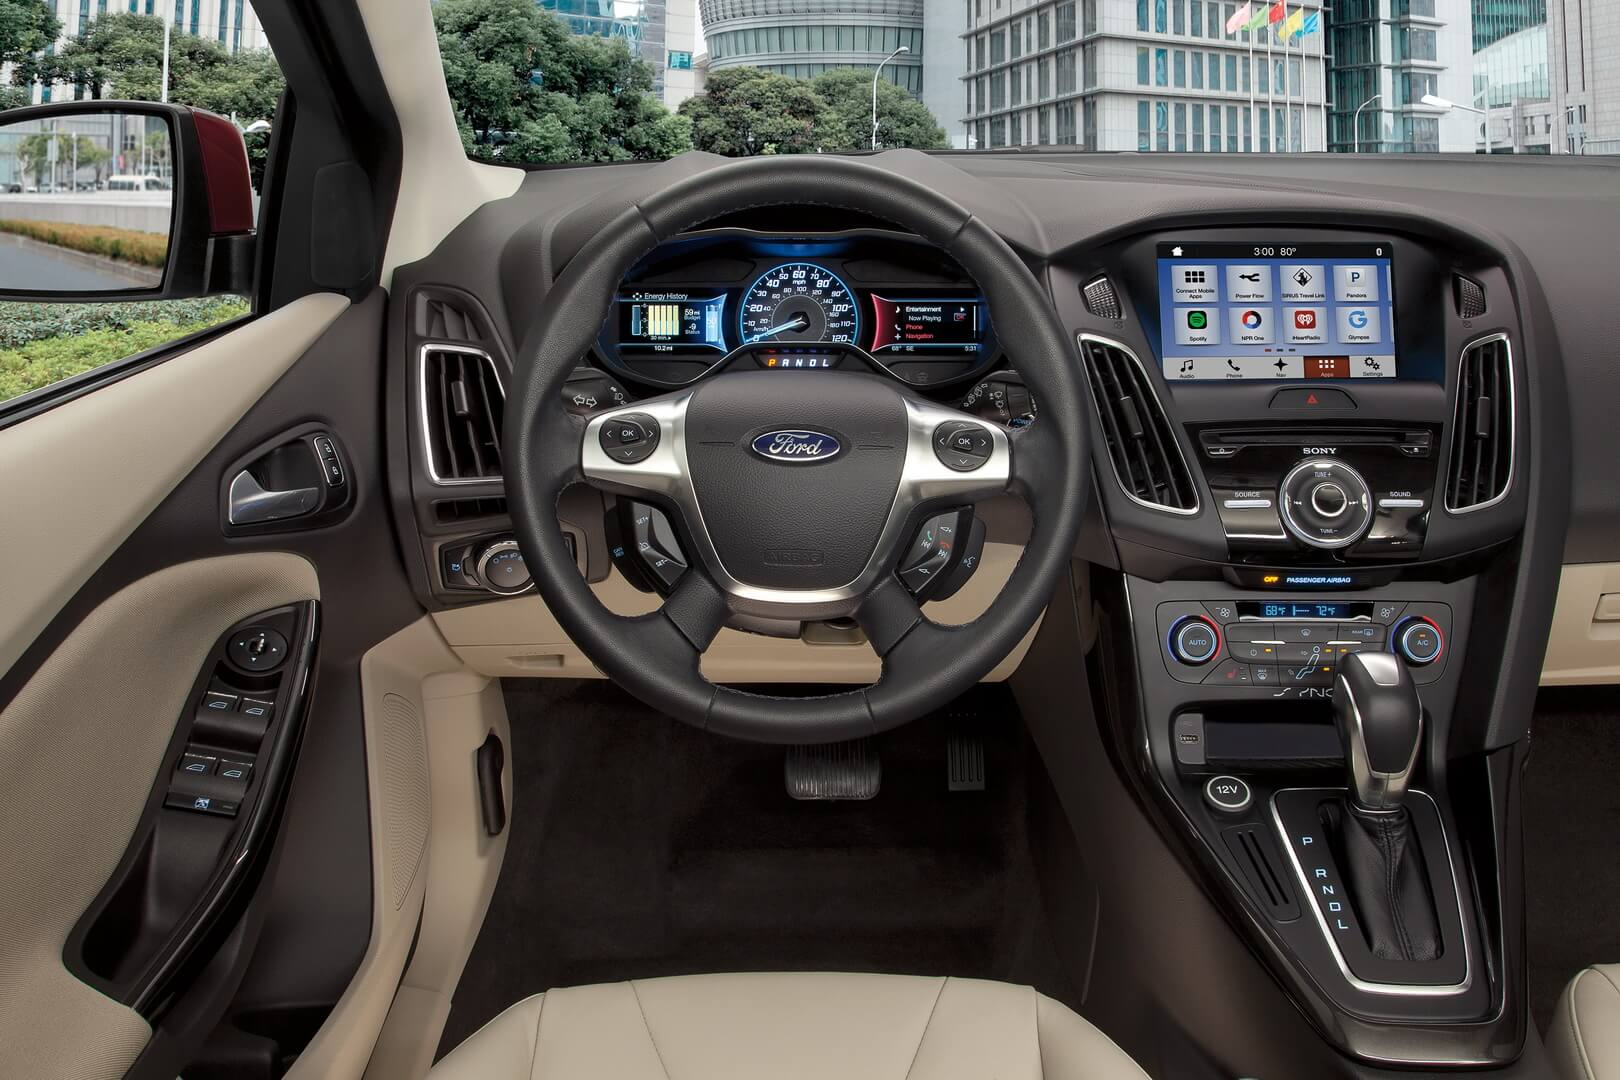 Ford Focus Electric 34kwh-interior-1